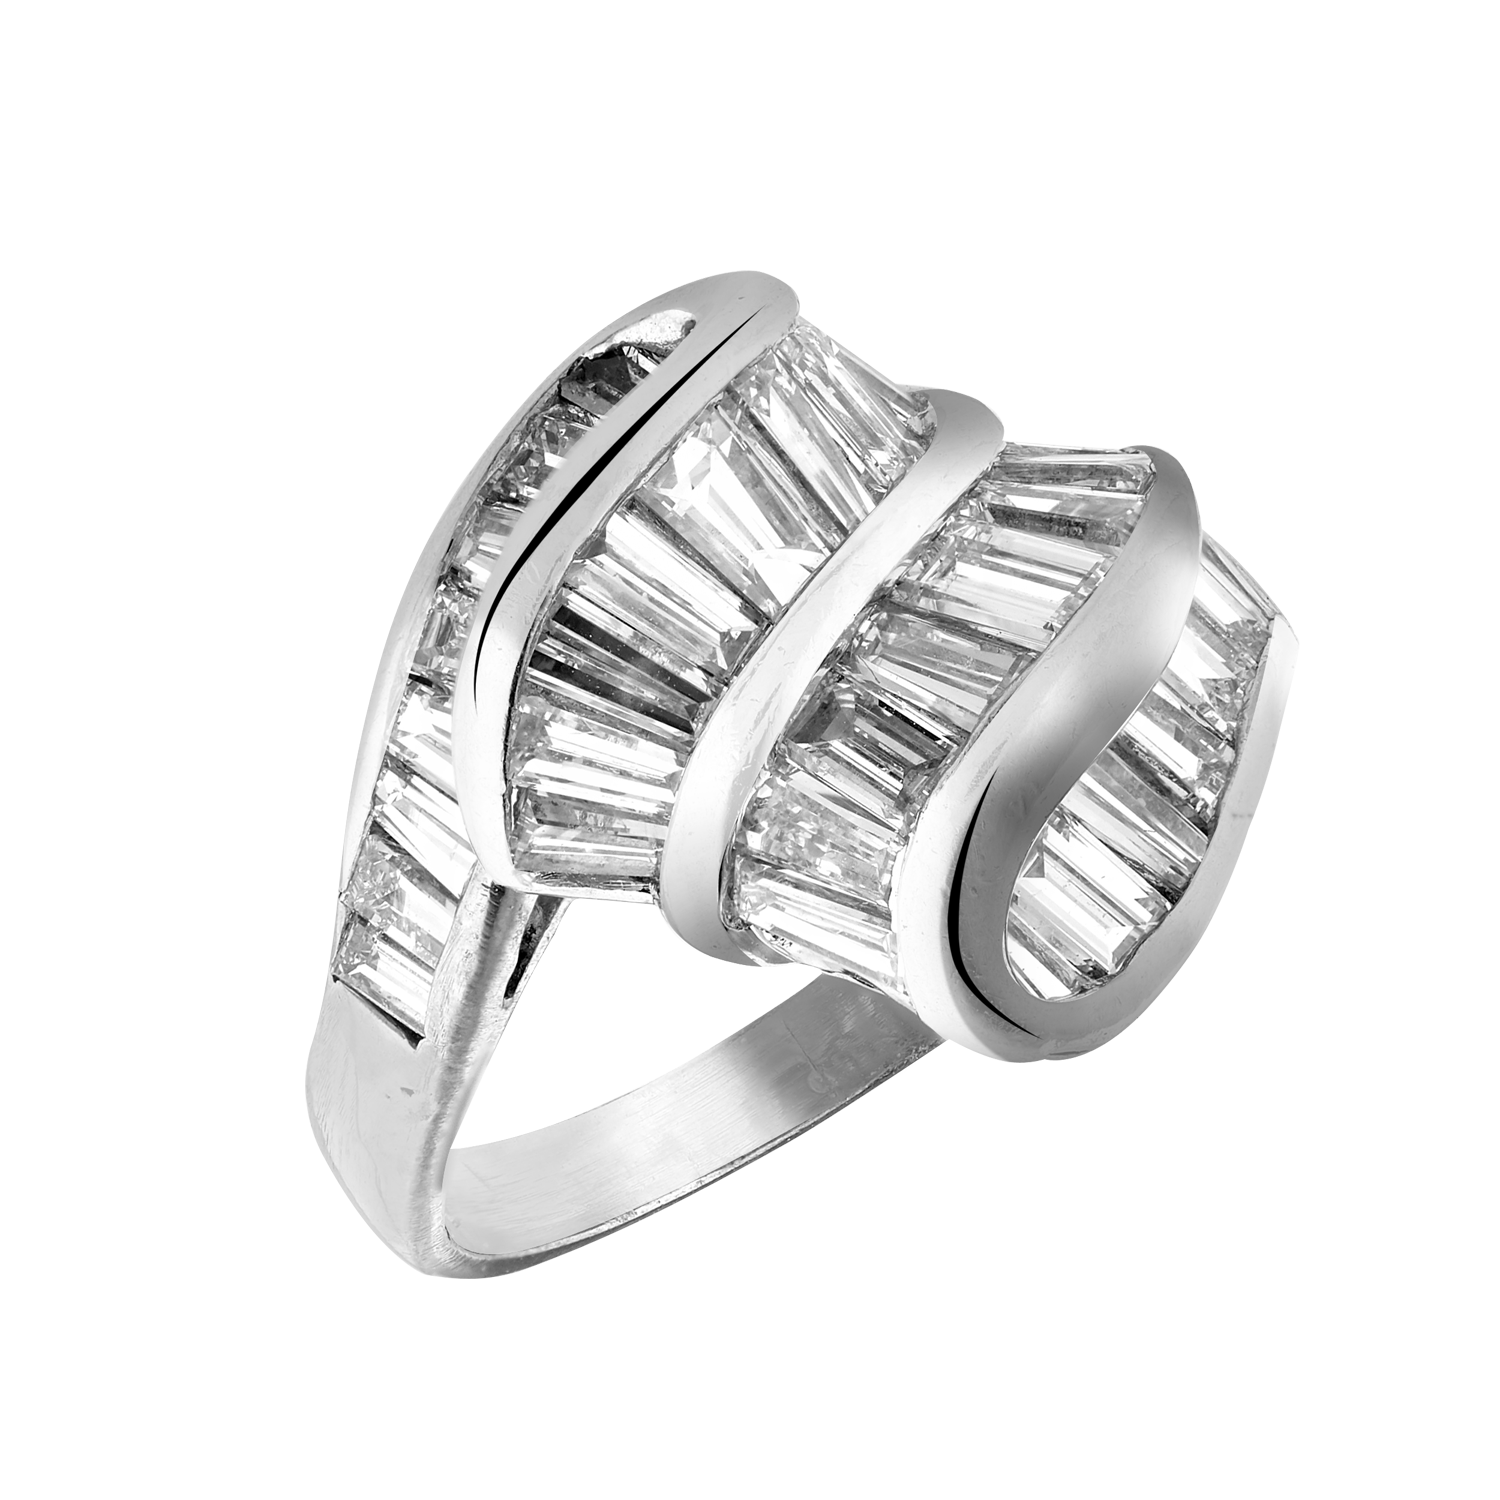 Bague volutes diamants baguettes Gerphagnon